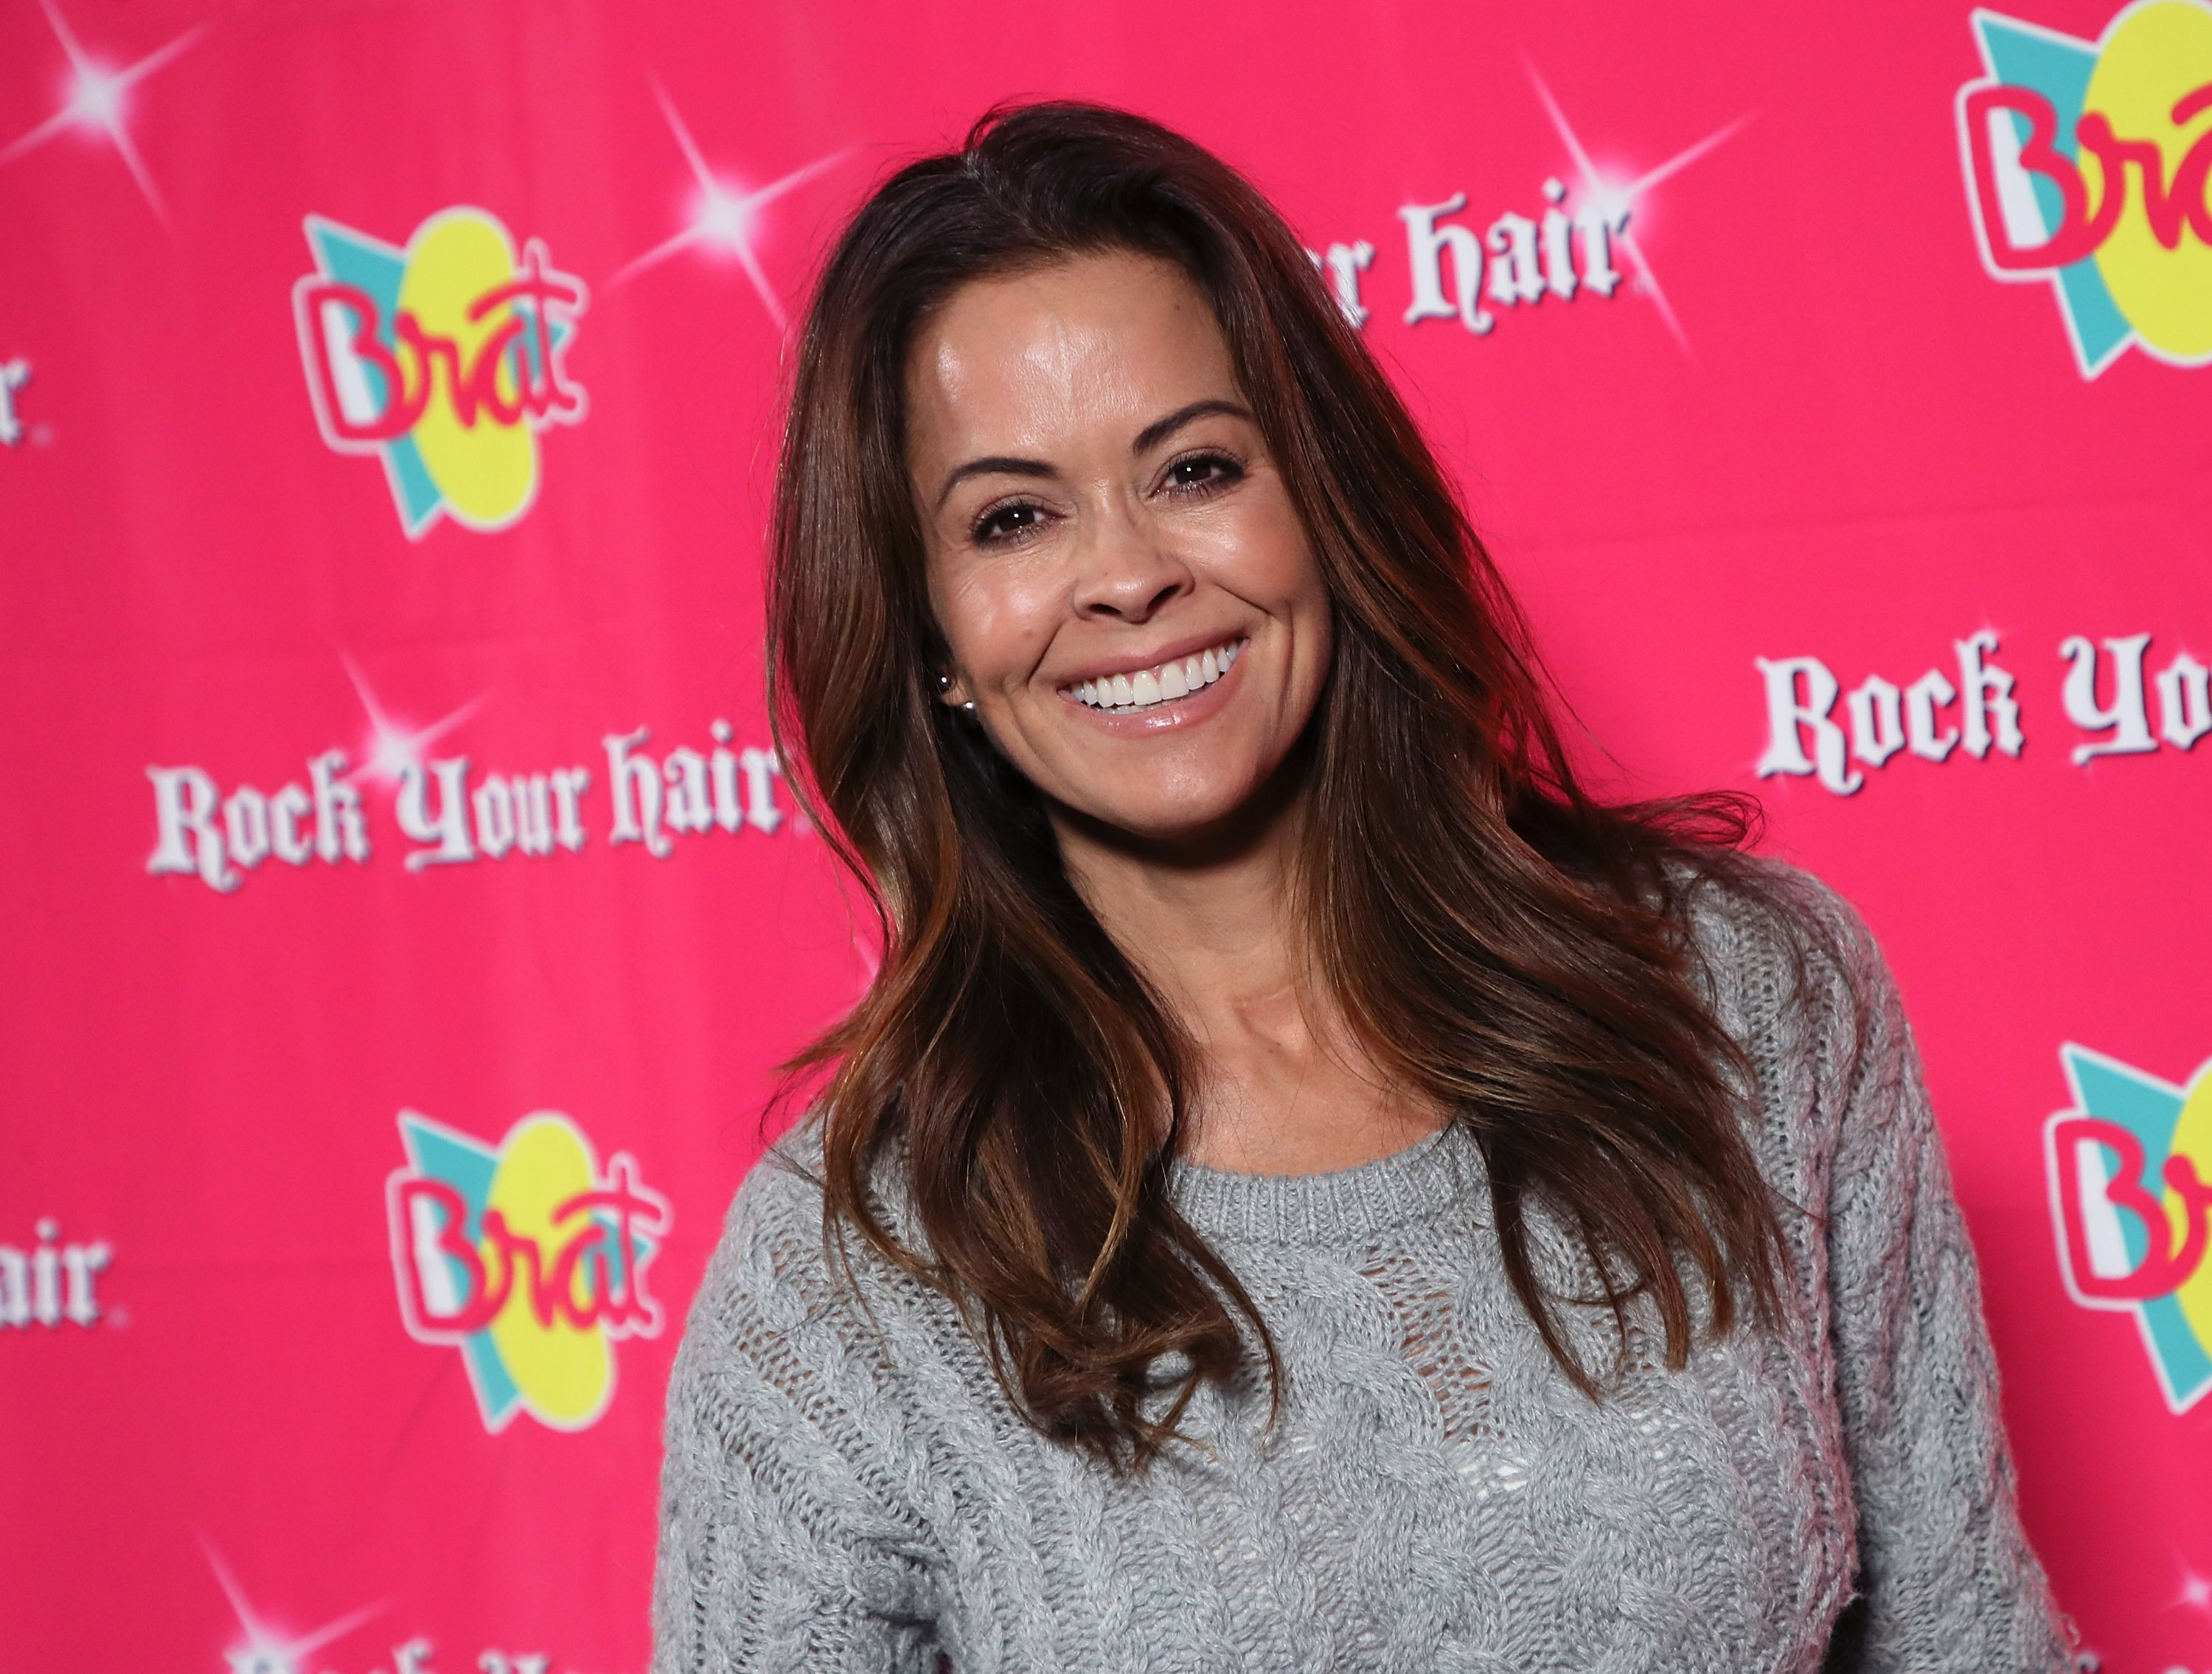 TV personality Brooke Burke-Charvet attends social media influencer Annie LeBlanc's 13th birthday party at Calamigos Beach Club on December 9, 2017 in Malibu, California | Photo: Getty Images